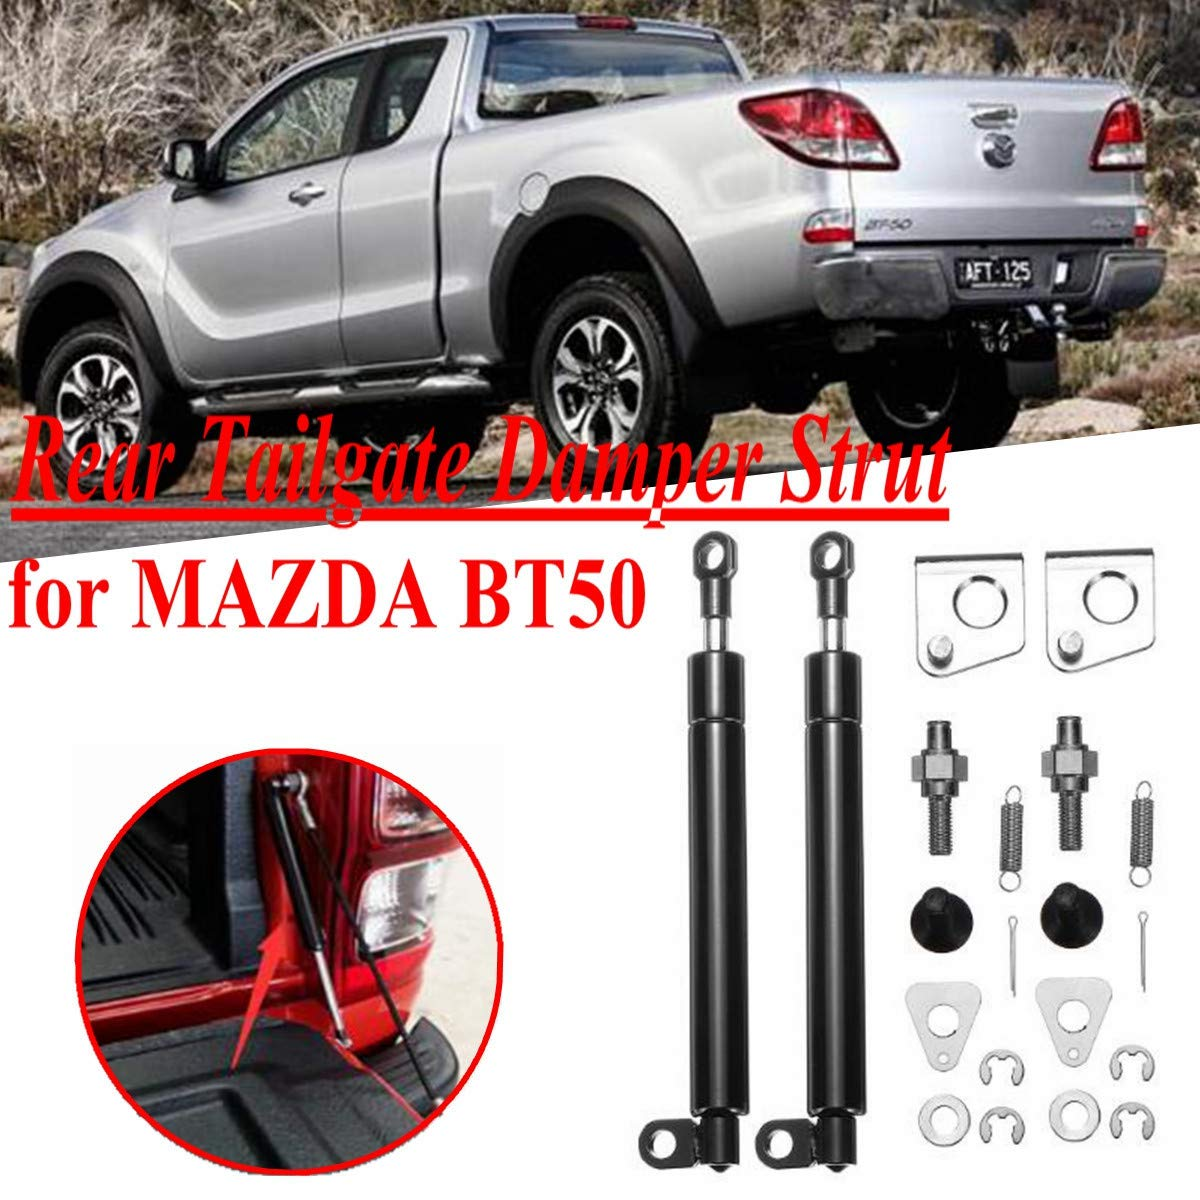 Alelife 1 Pair Rear Tailgate Slow Down /& Easy Up Strut Kit for Ford PX Ranger 2011-2017 Accessories